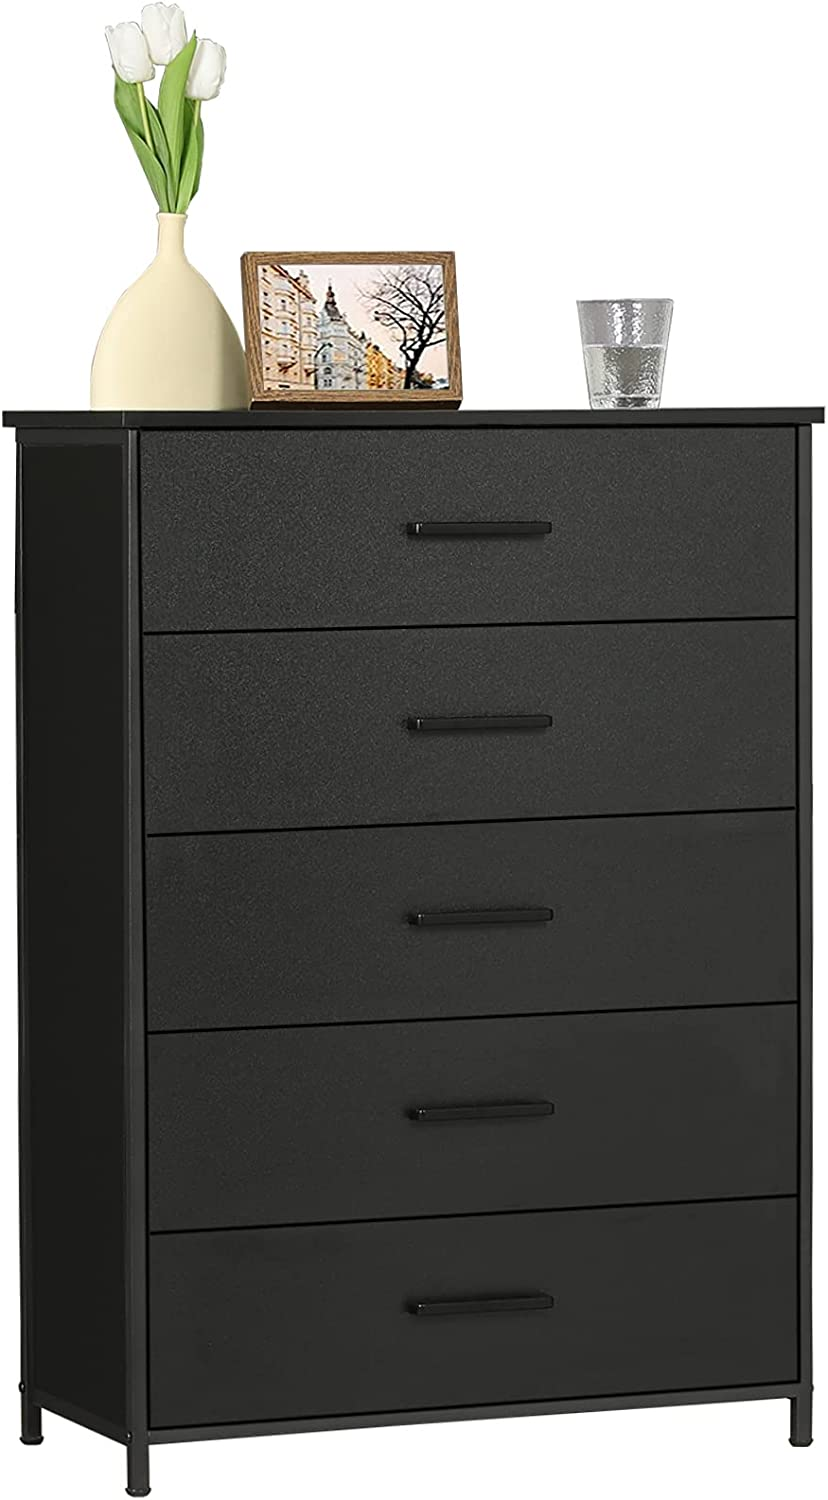 Hasuit 5 Drawer Wood Dresser Storage Clothes Max 43% OFF 5% OFF O Tower Industrial